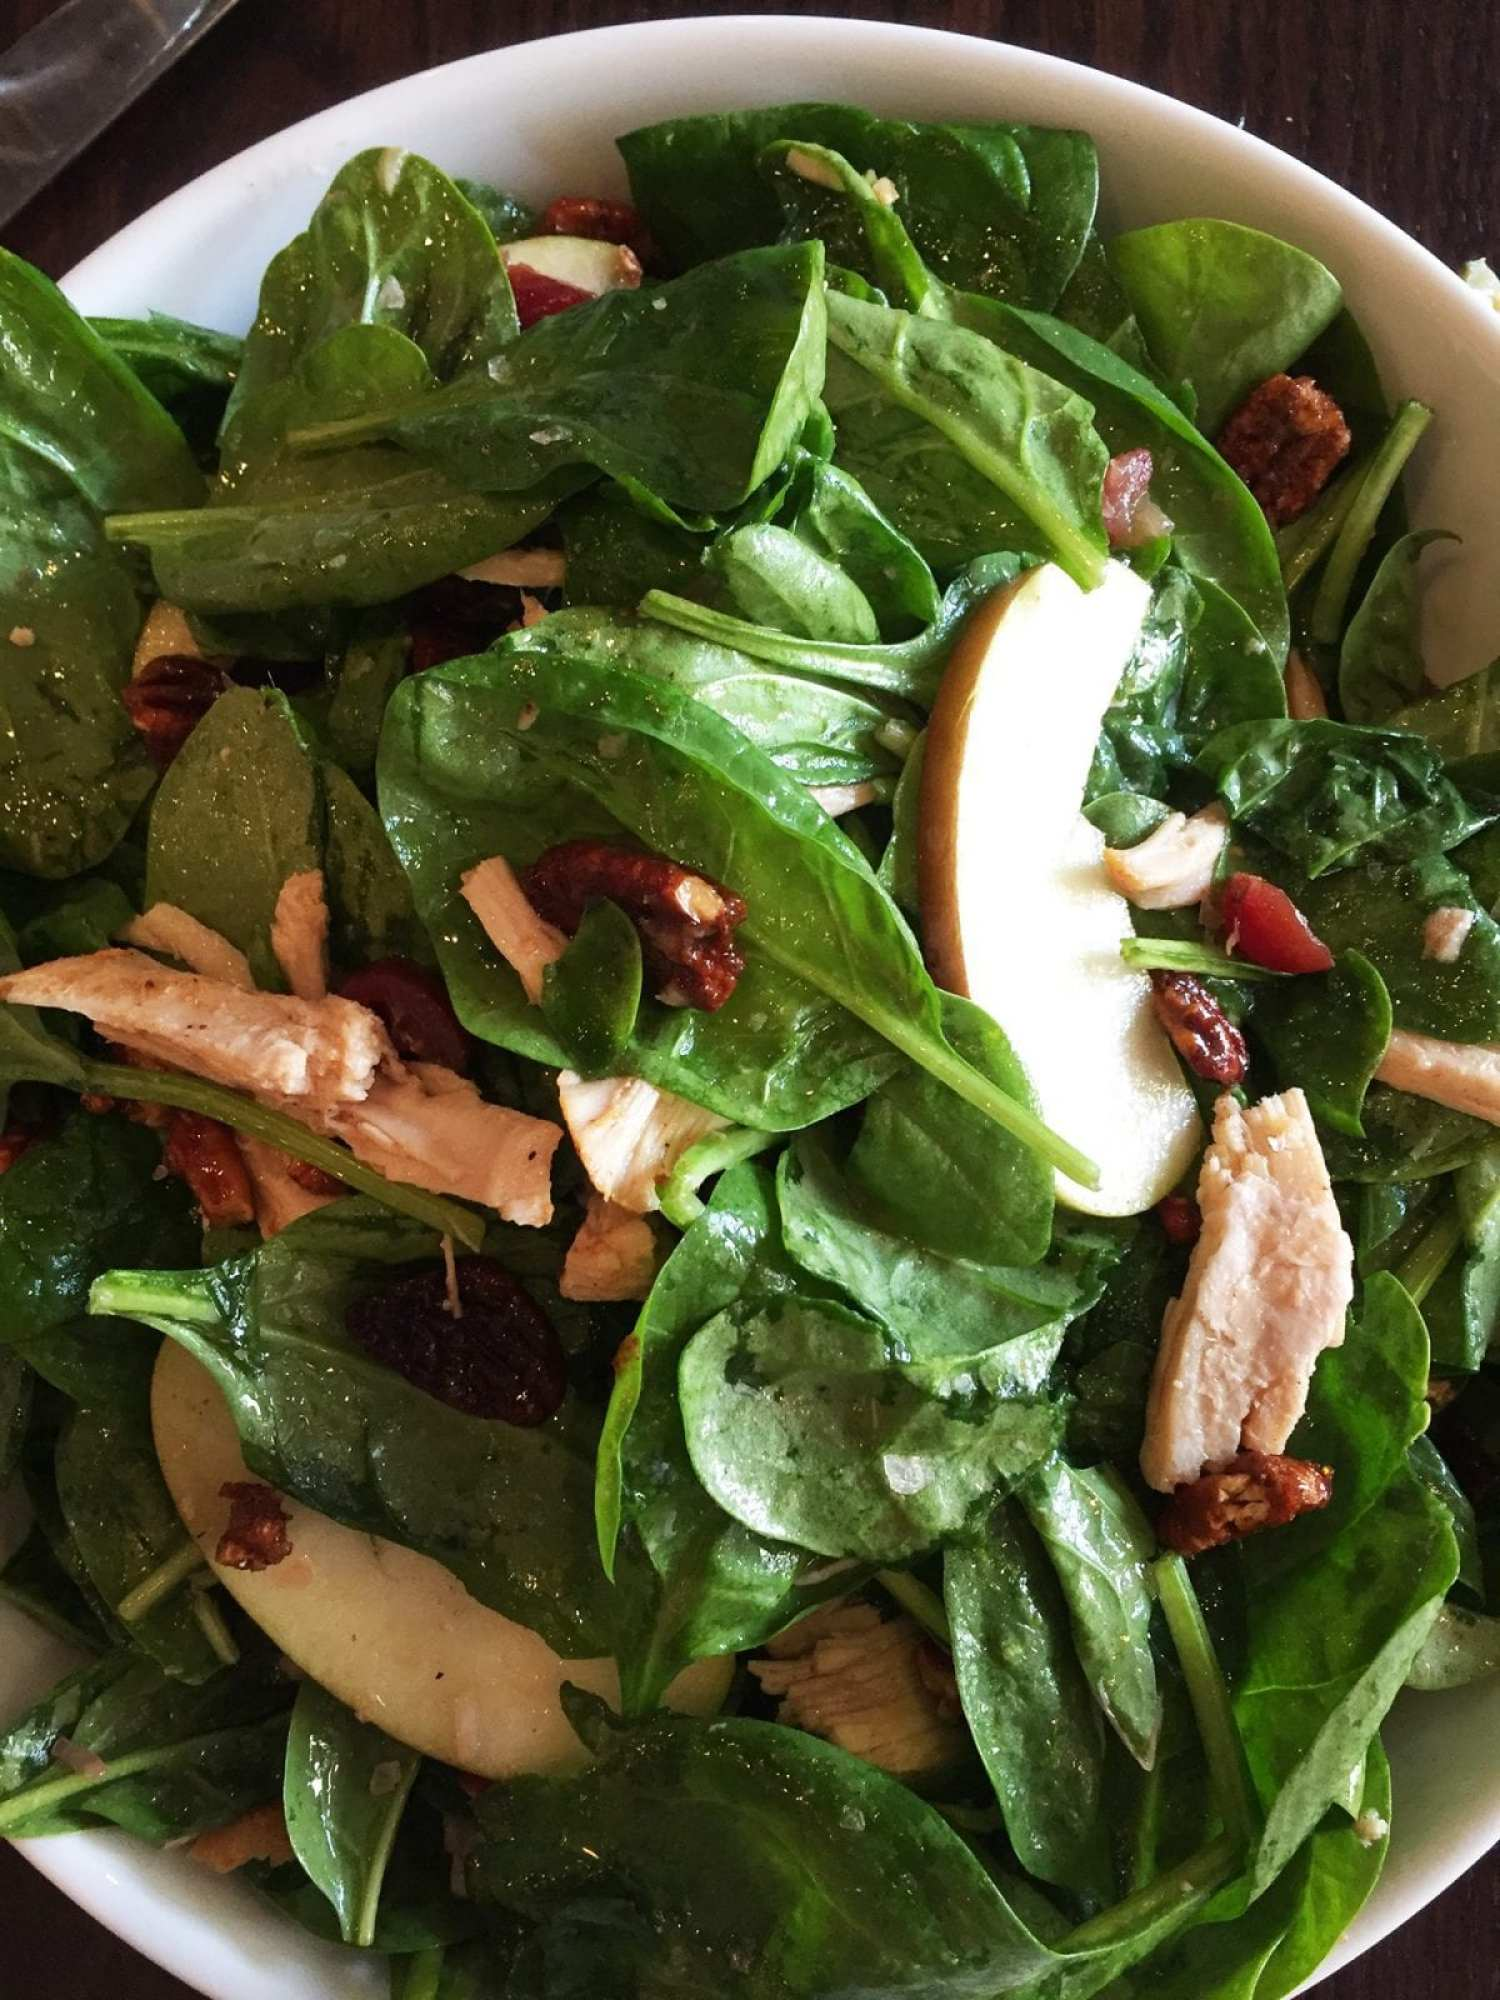 Places to eat in New Orleans - healthy